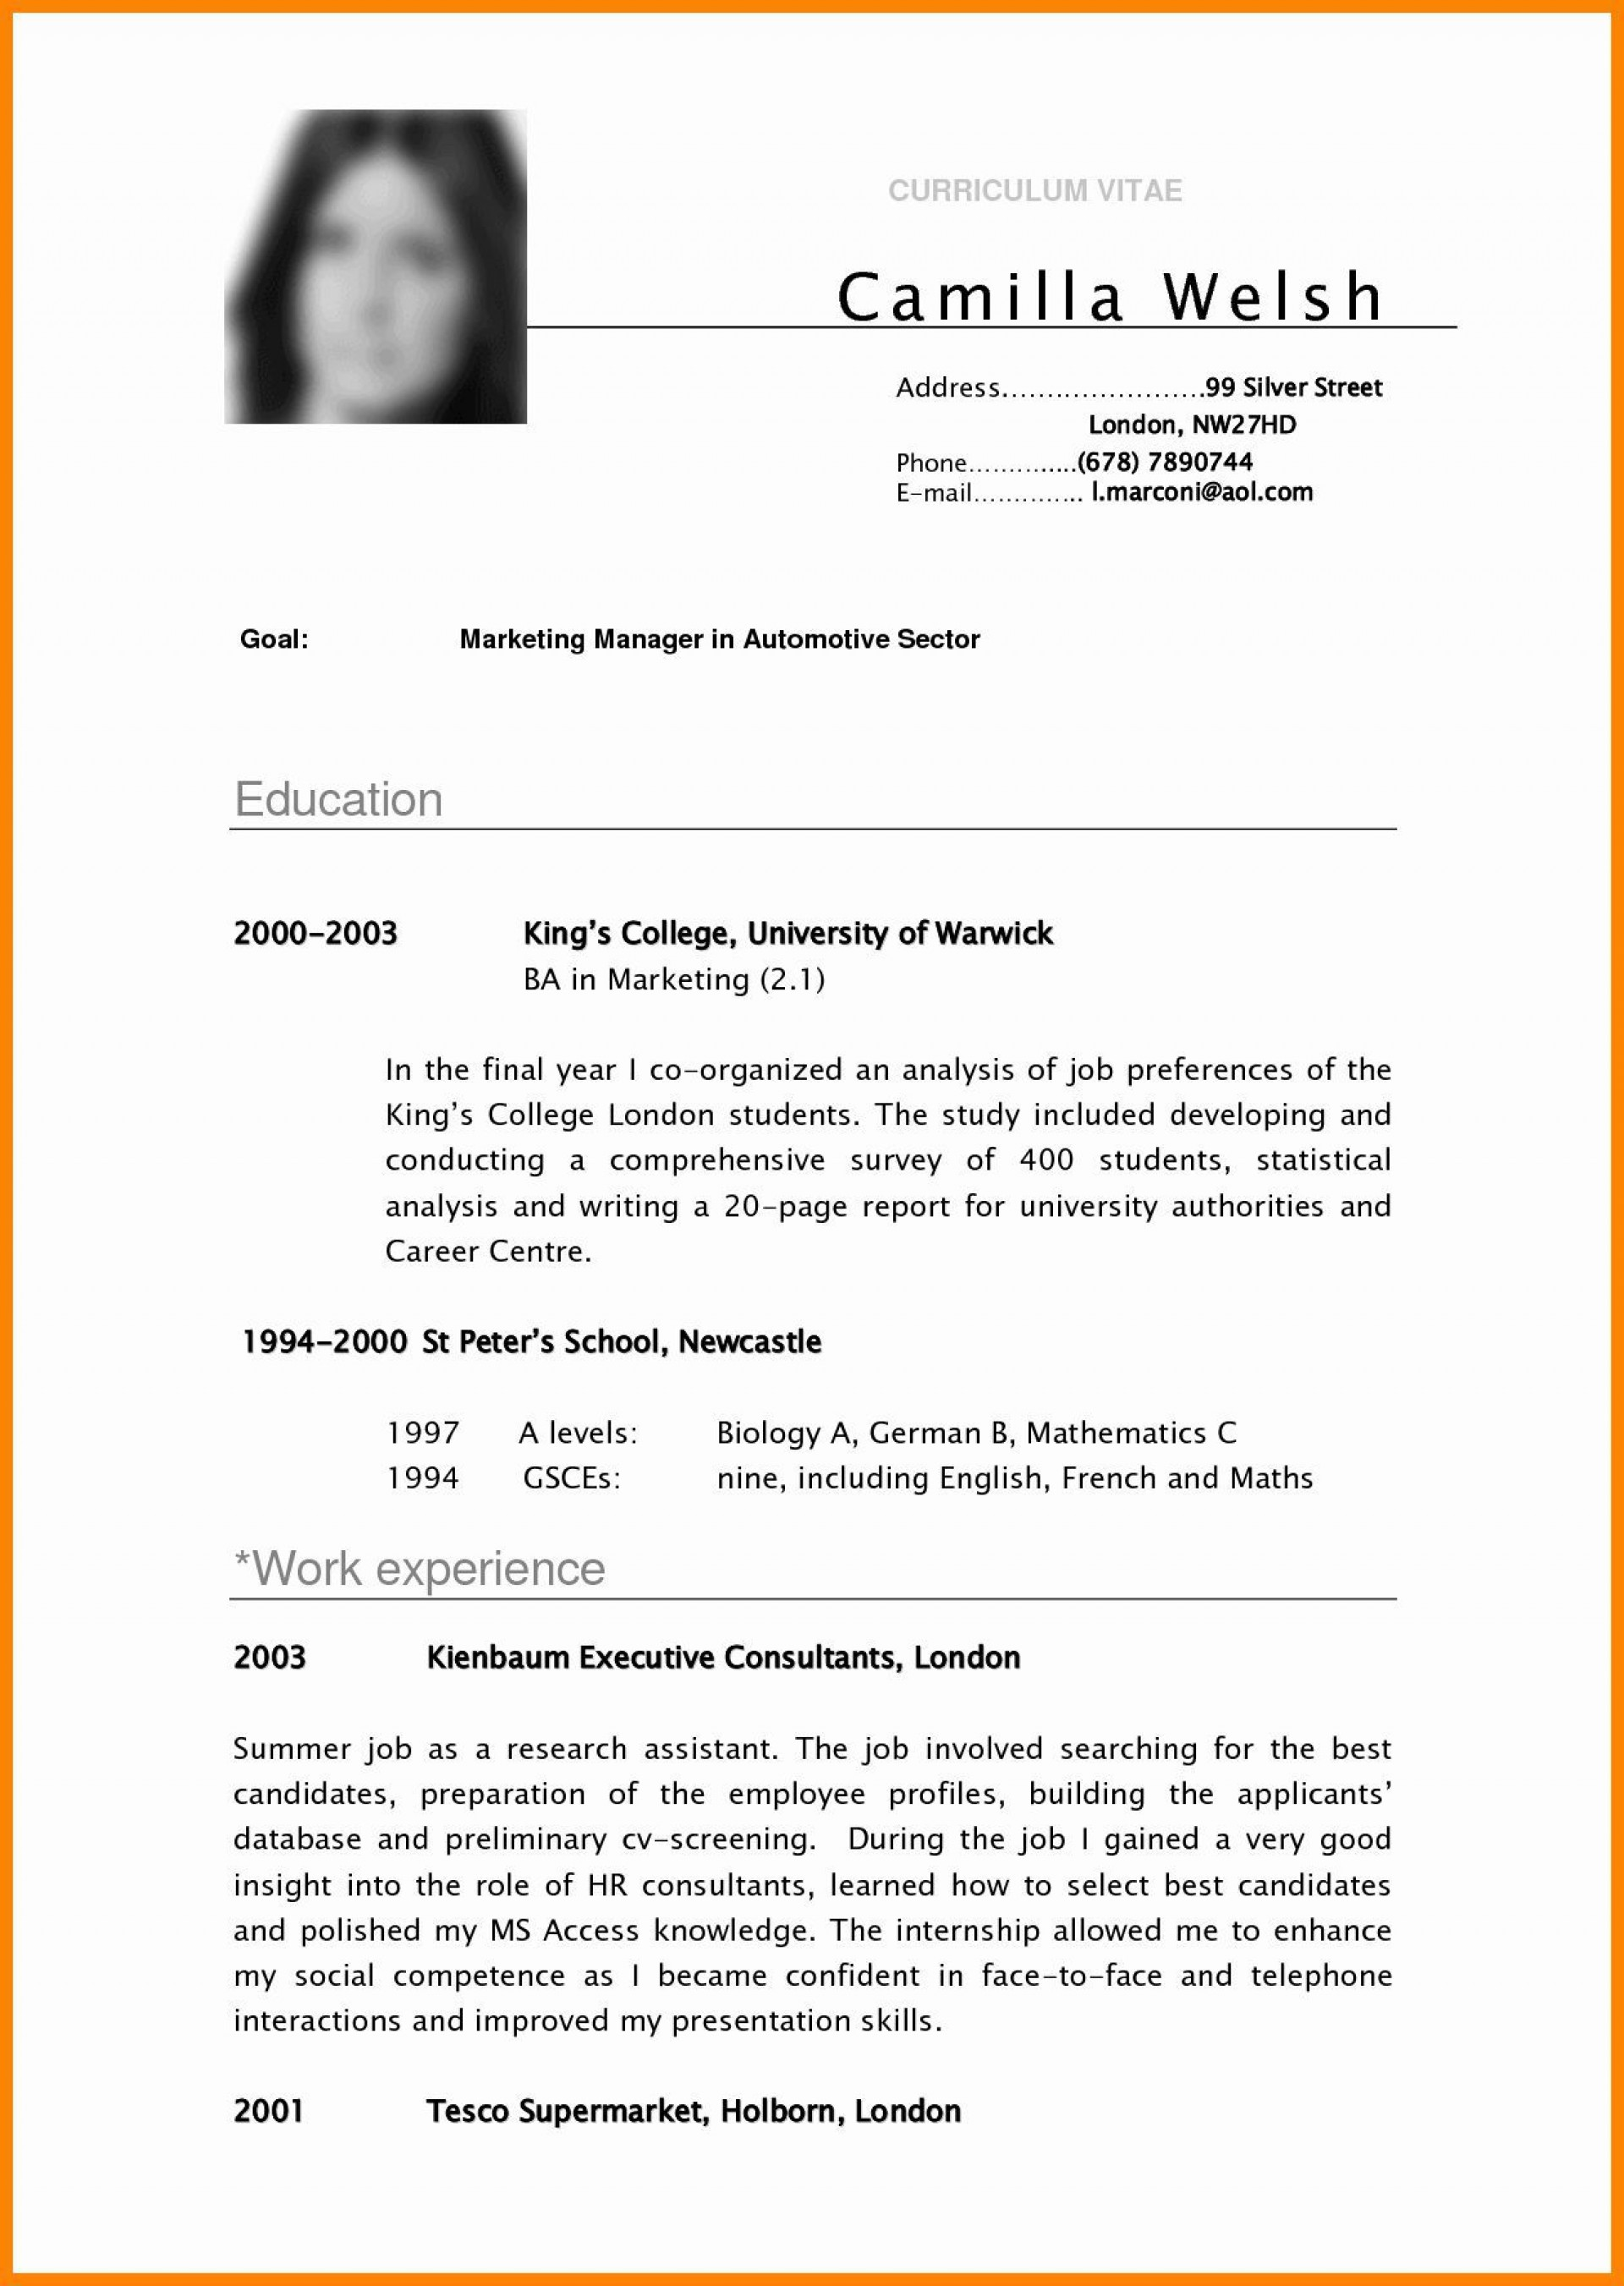 002 Shocking Resume Template For College Student Idea  Students Free Download Example With Little Work Experience1920